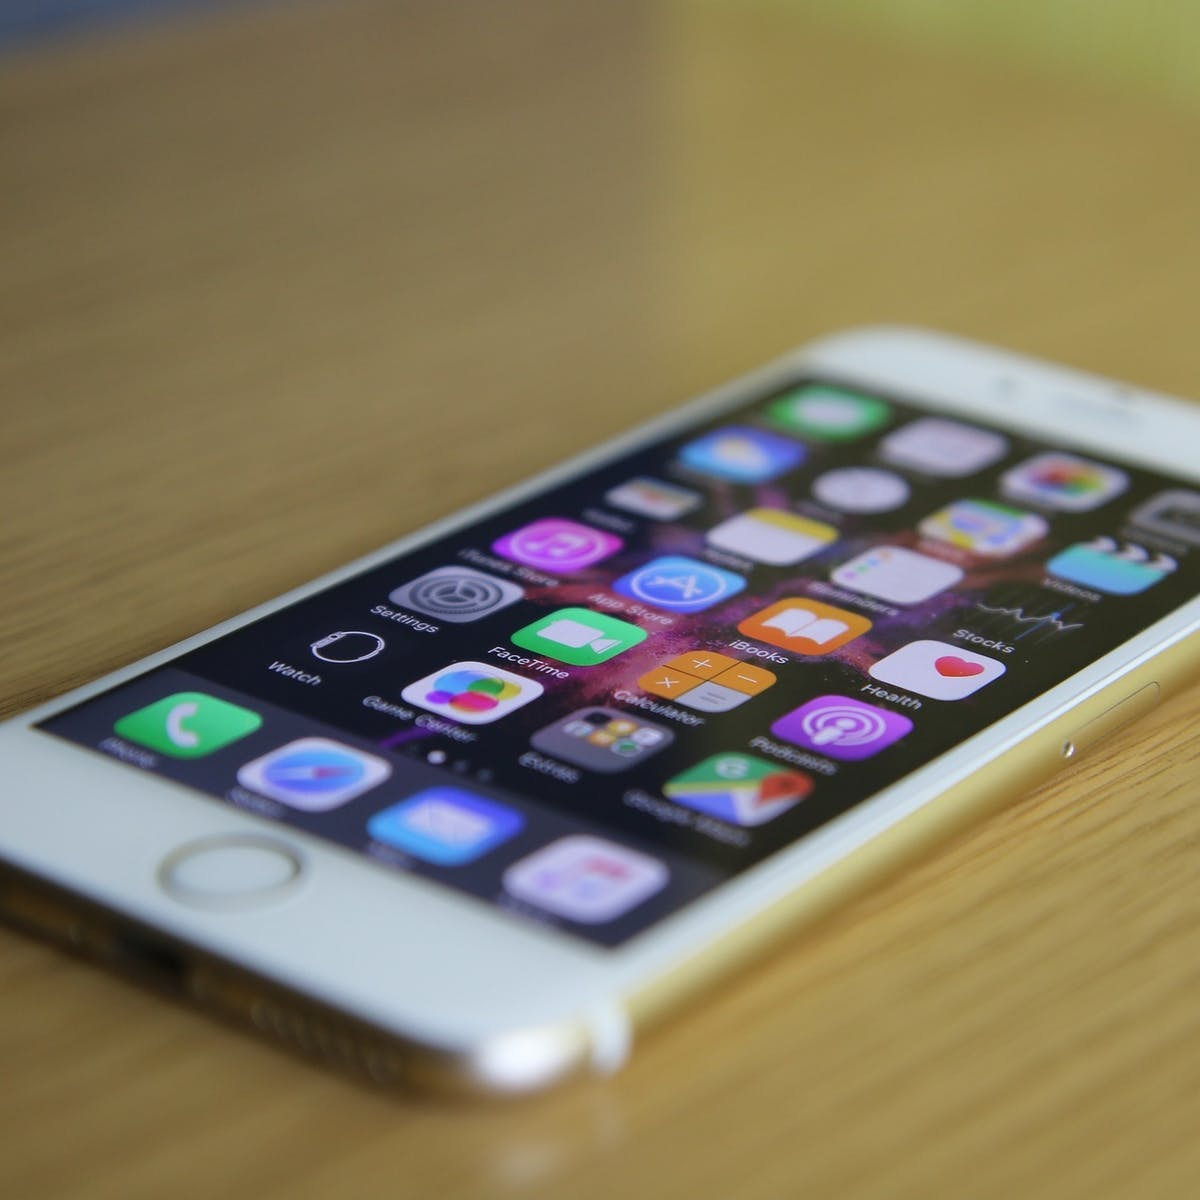 How to Get a New iPhone 6s Battery from Apple